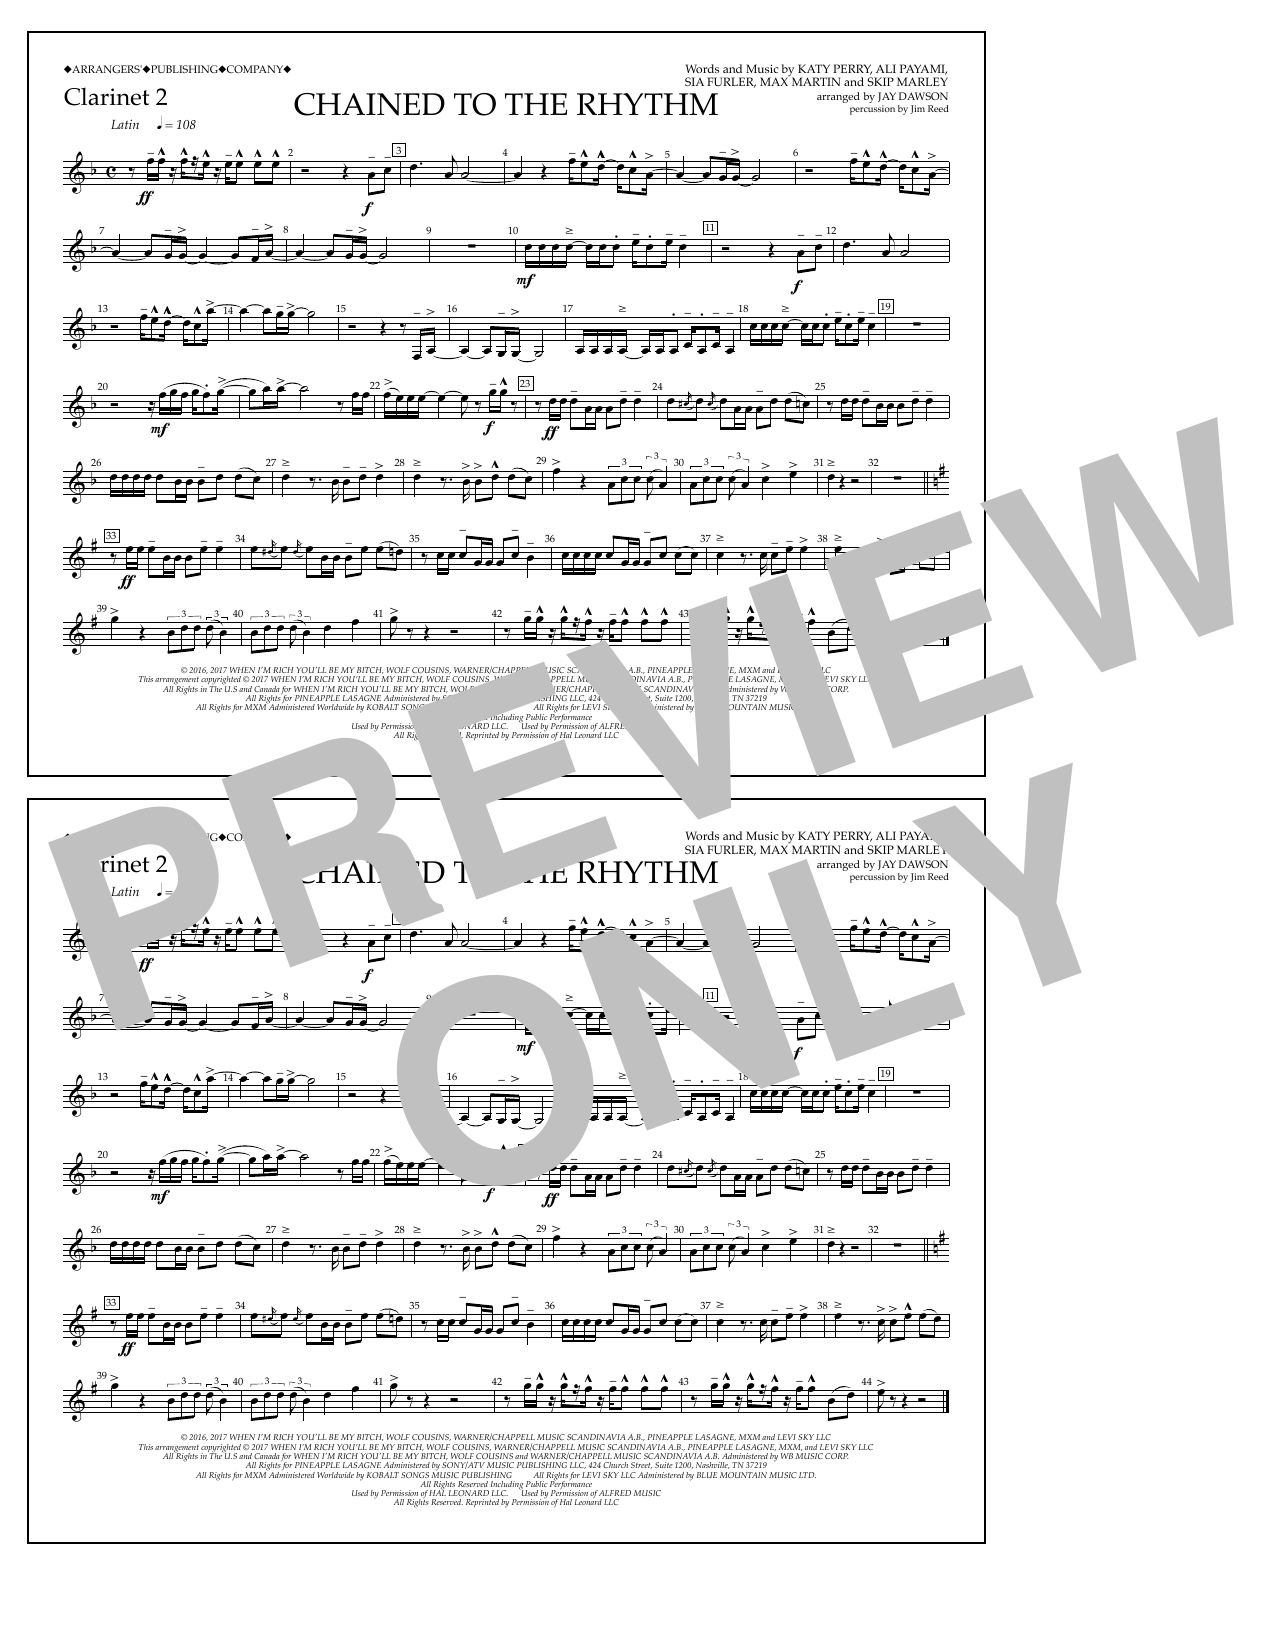 Chained to the Rhythm - Clarinet 2 Sheet Music